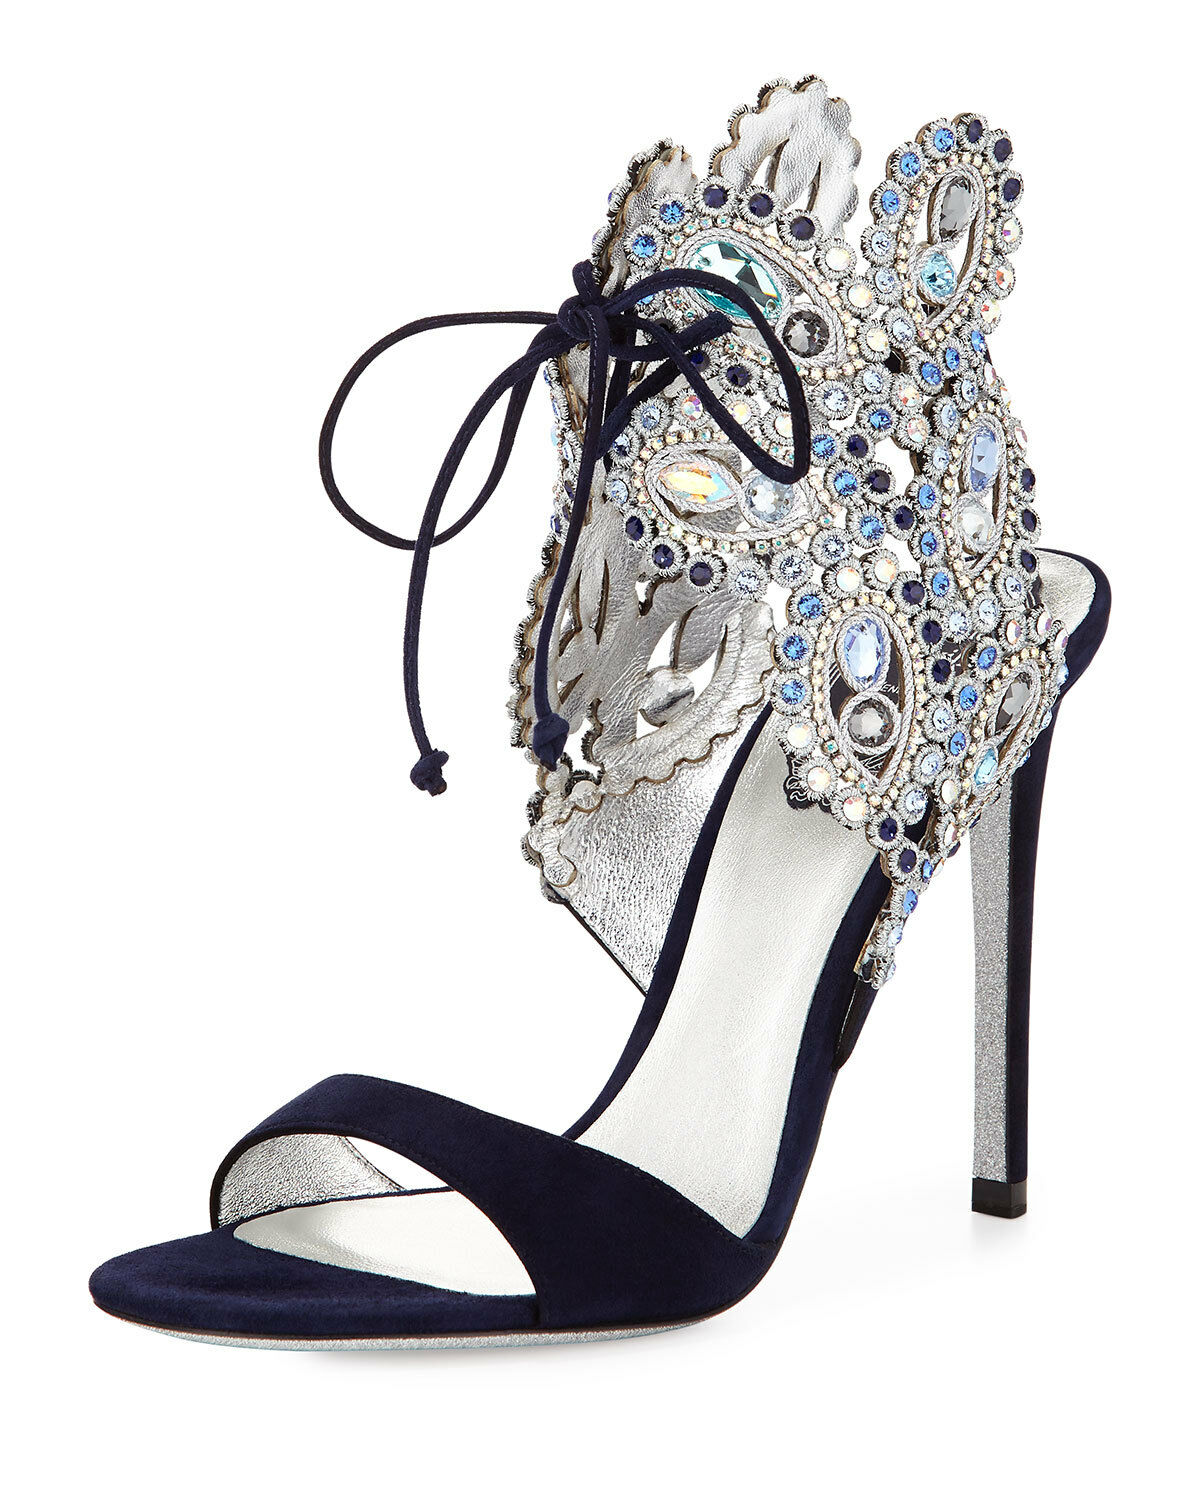 Rene Caovilla with Swarovski Crystals Ankle-Tie Evening Heels, Navy Blue sz 8.5